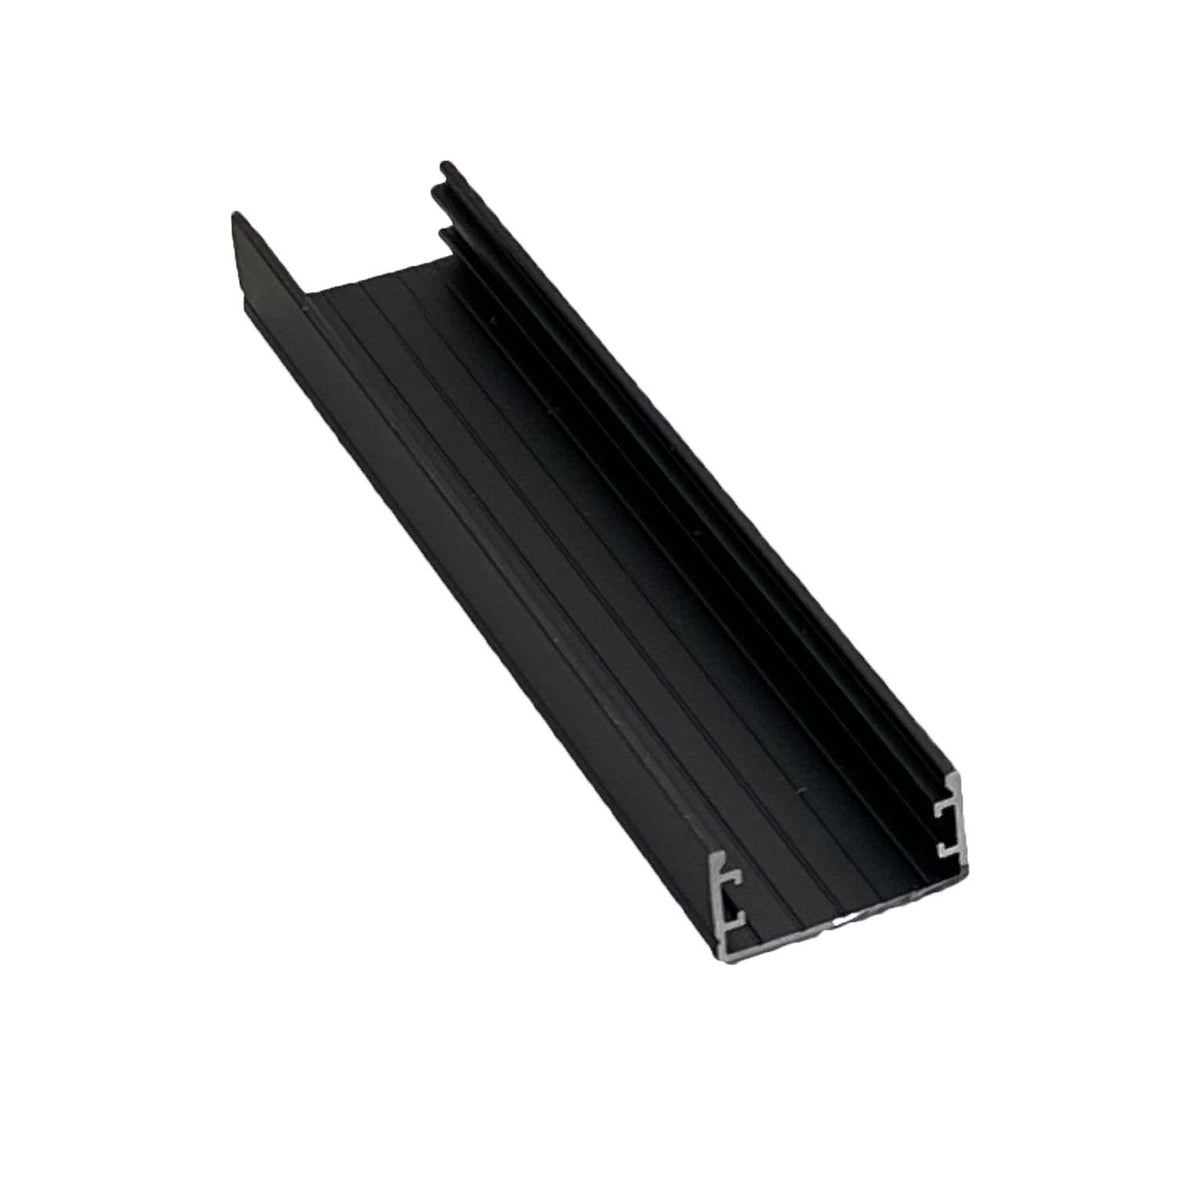 ALQ-3015 Channel Only - 2.44 Meter - Black